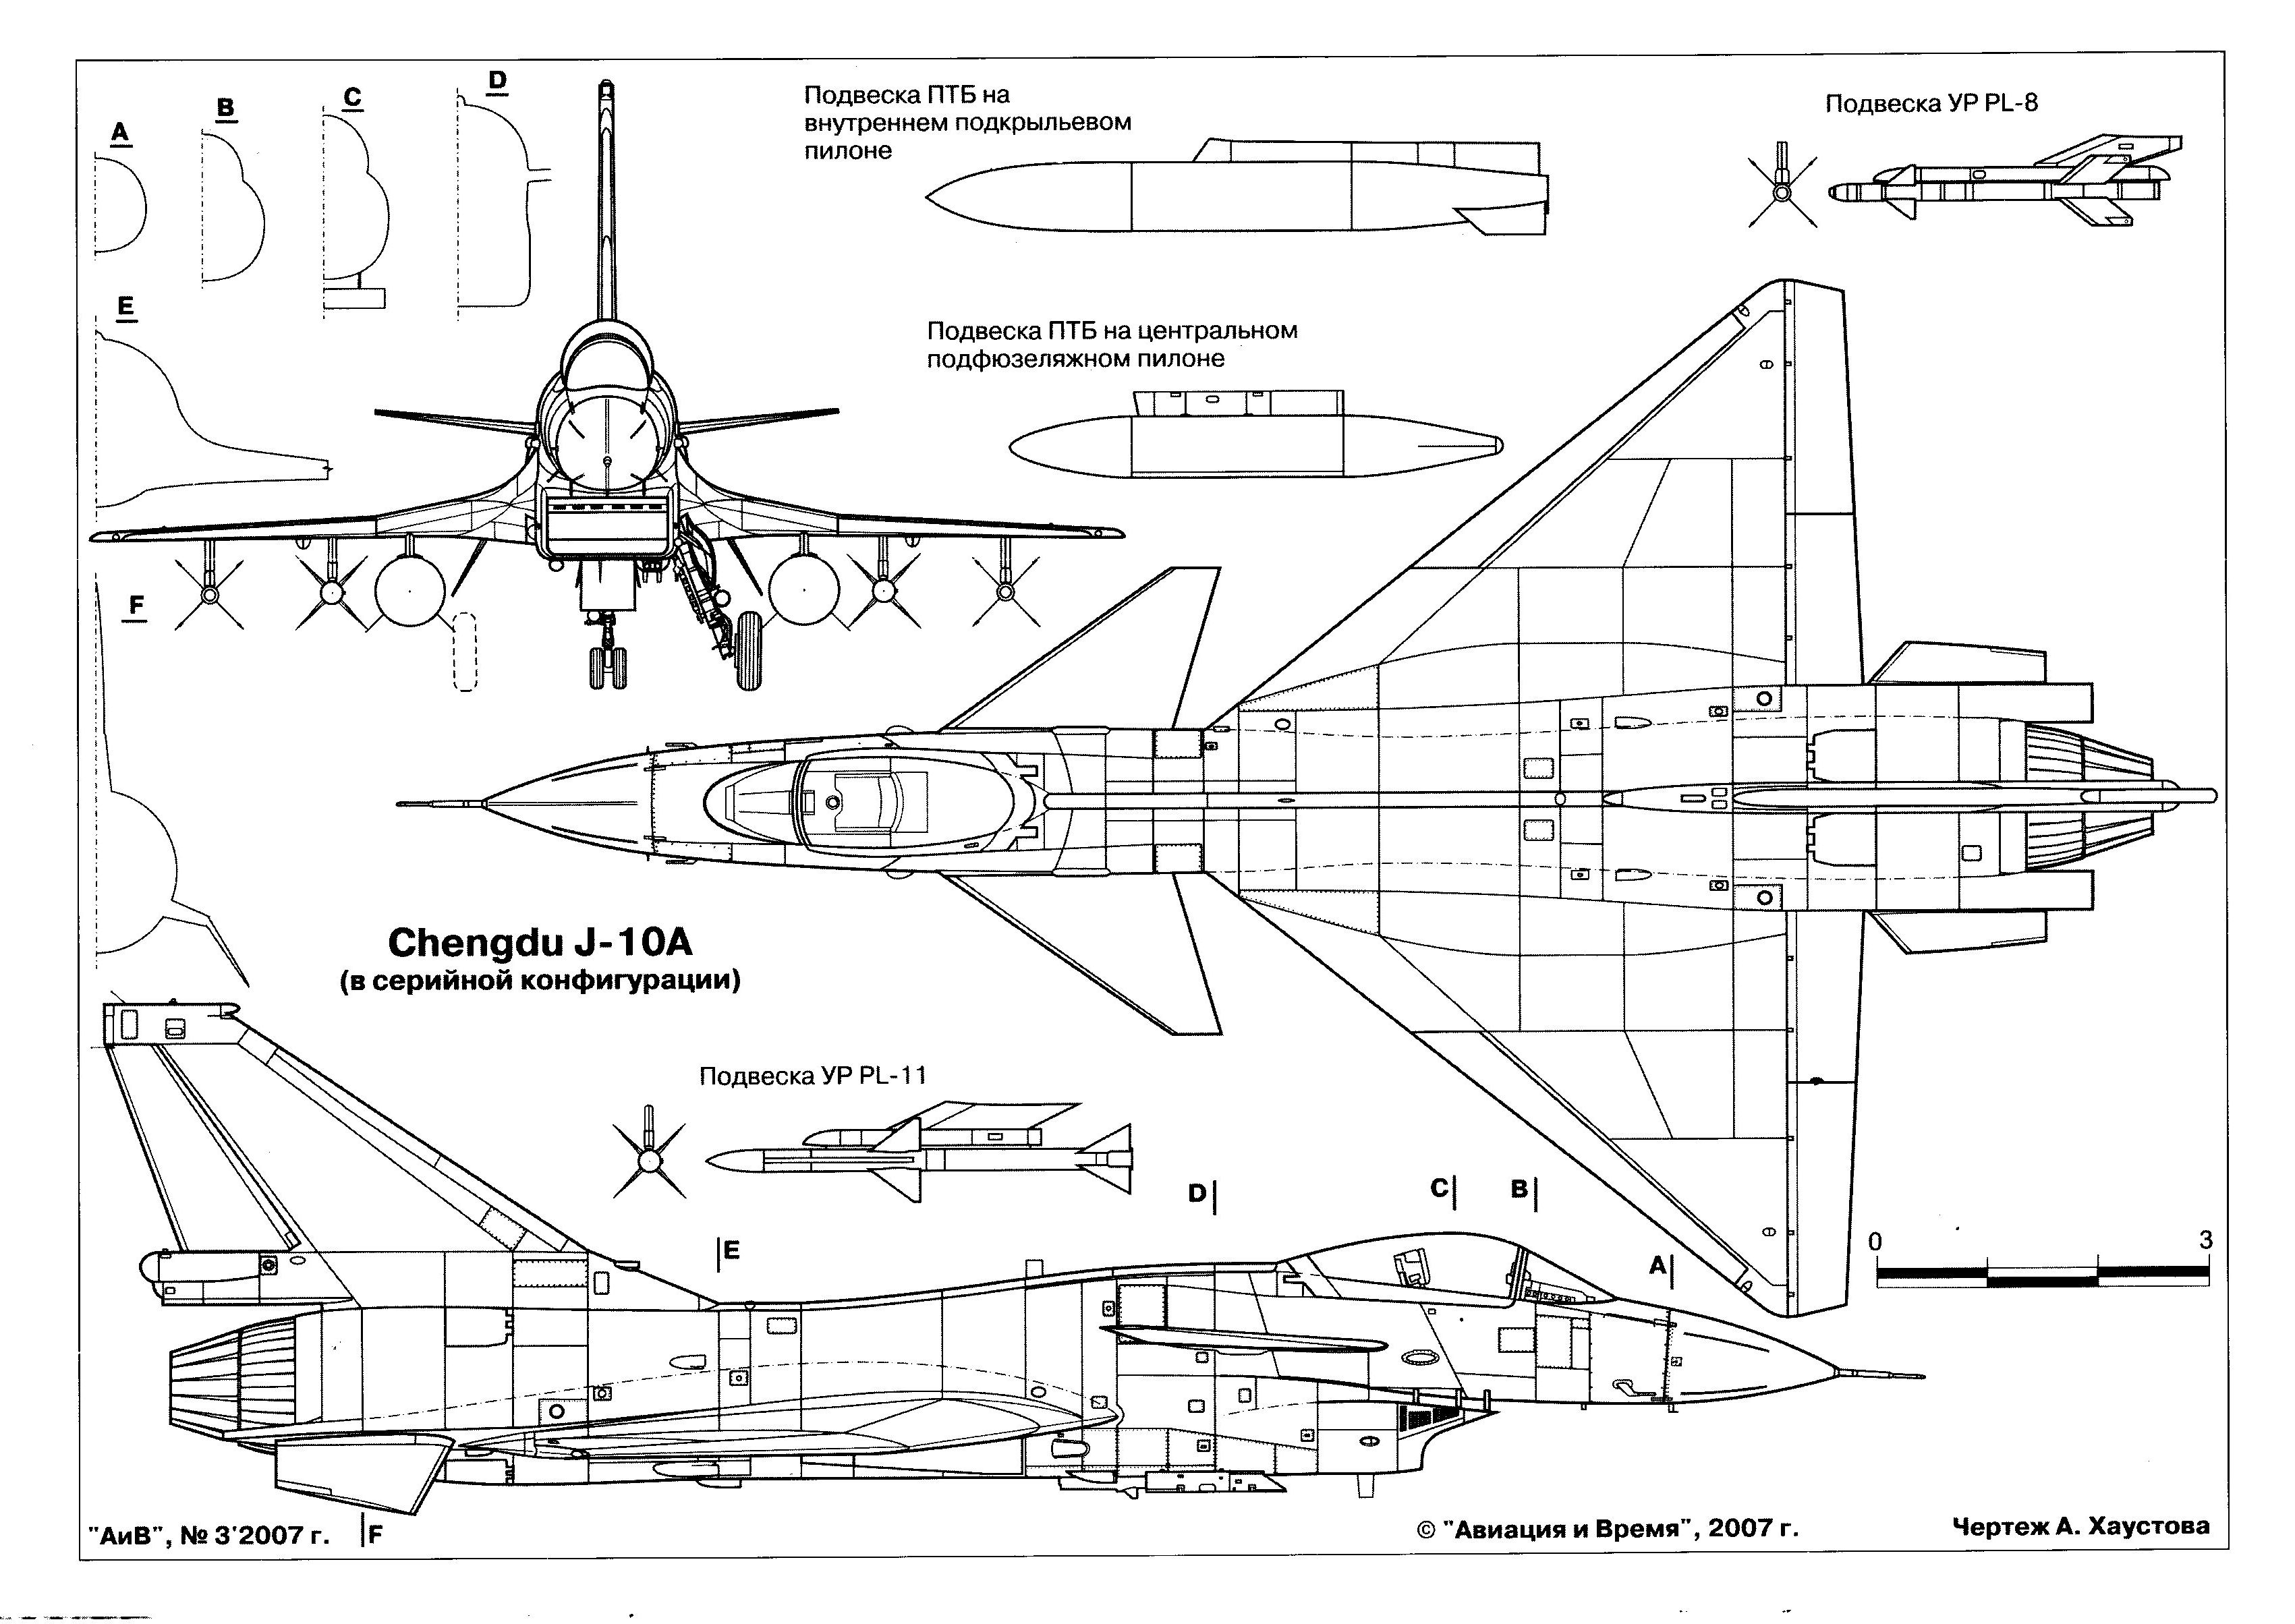 Chengdu J-10A blueprint